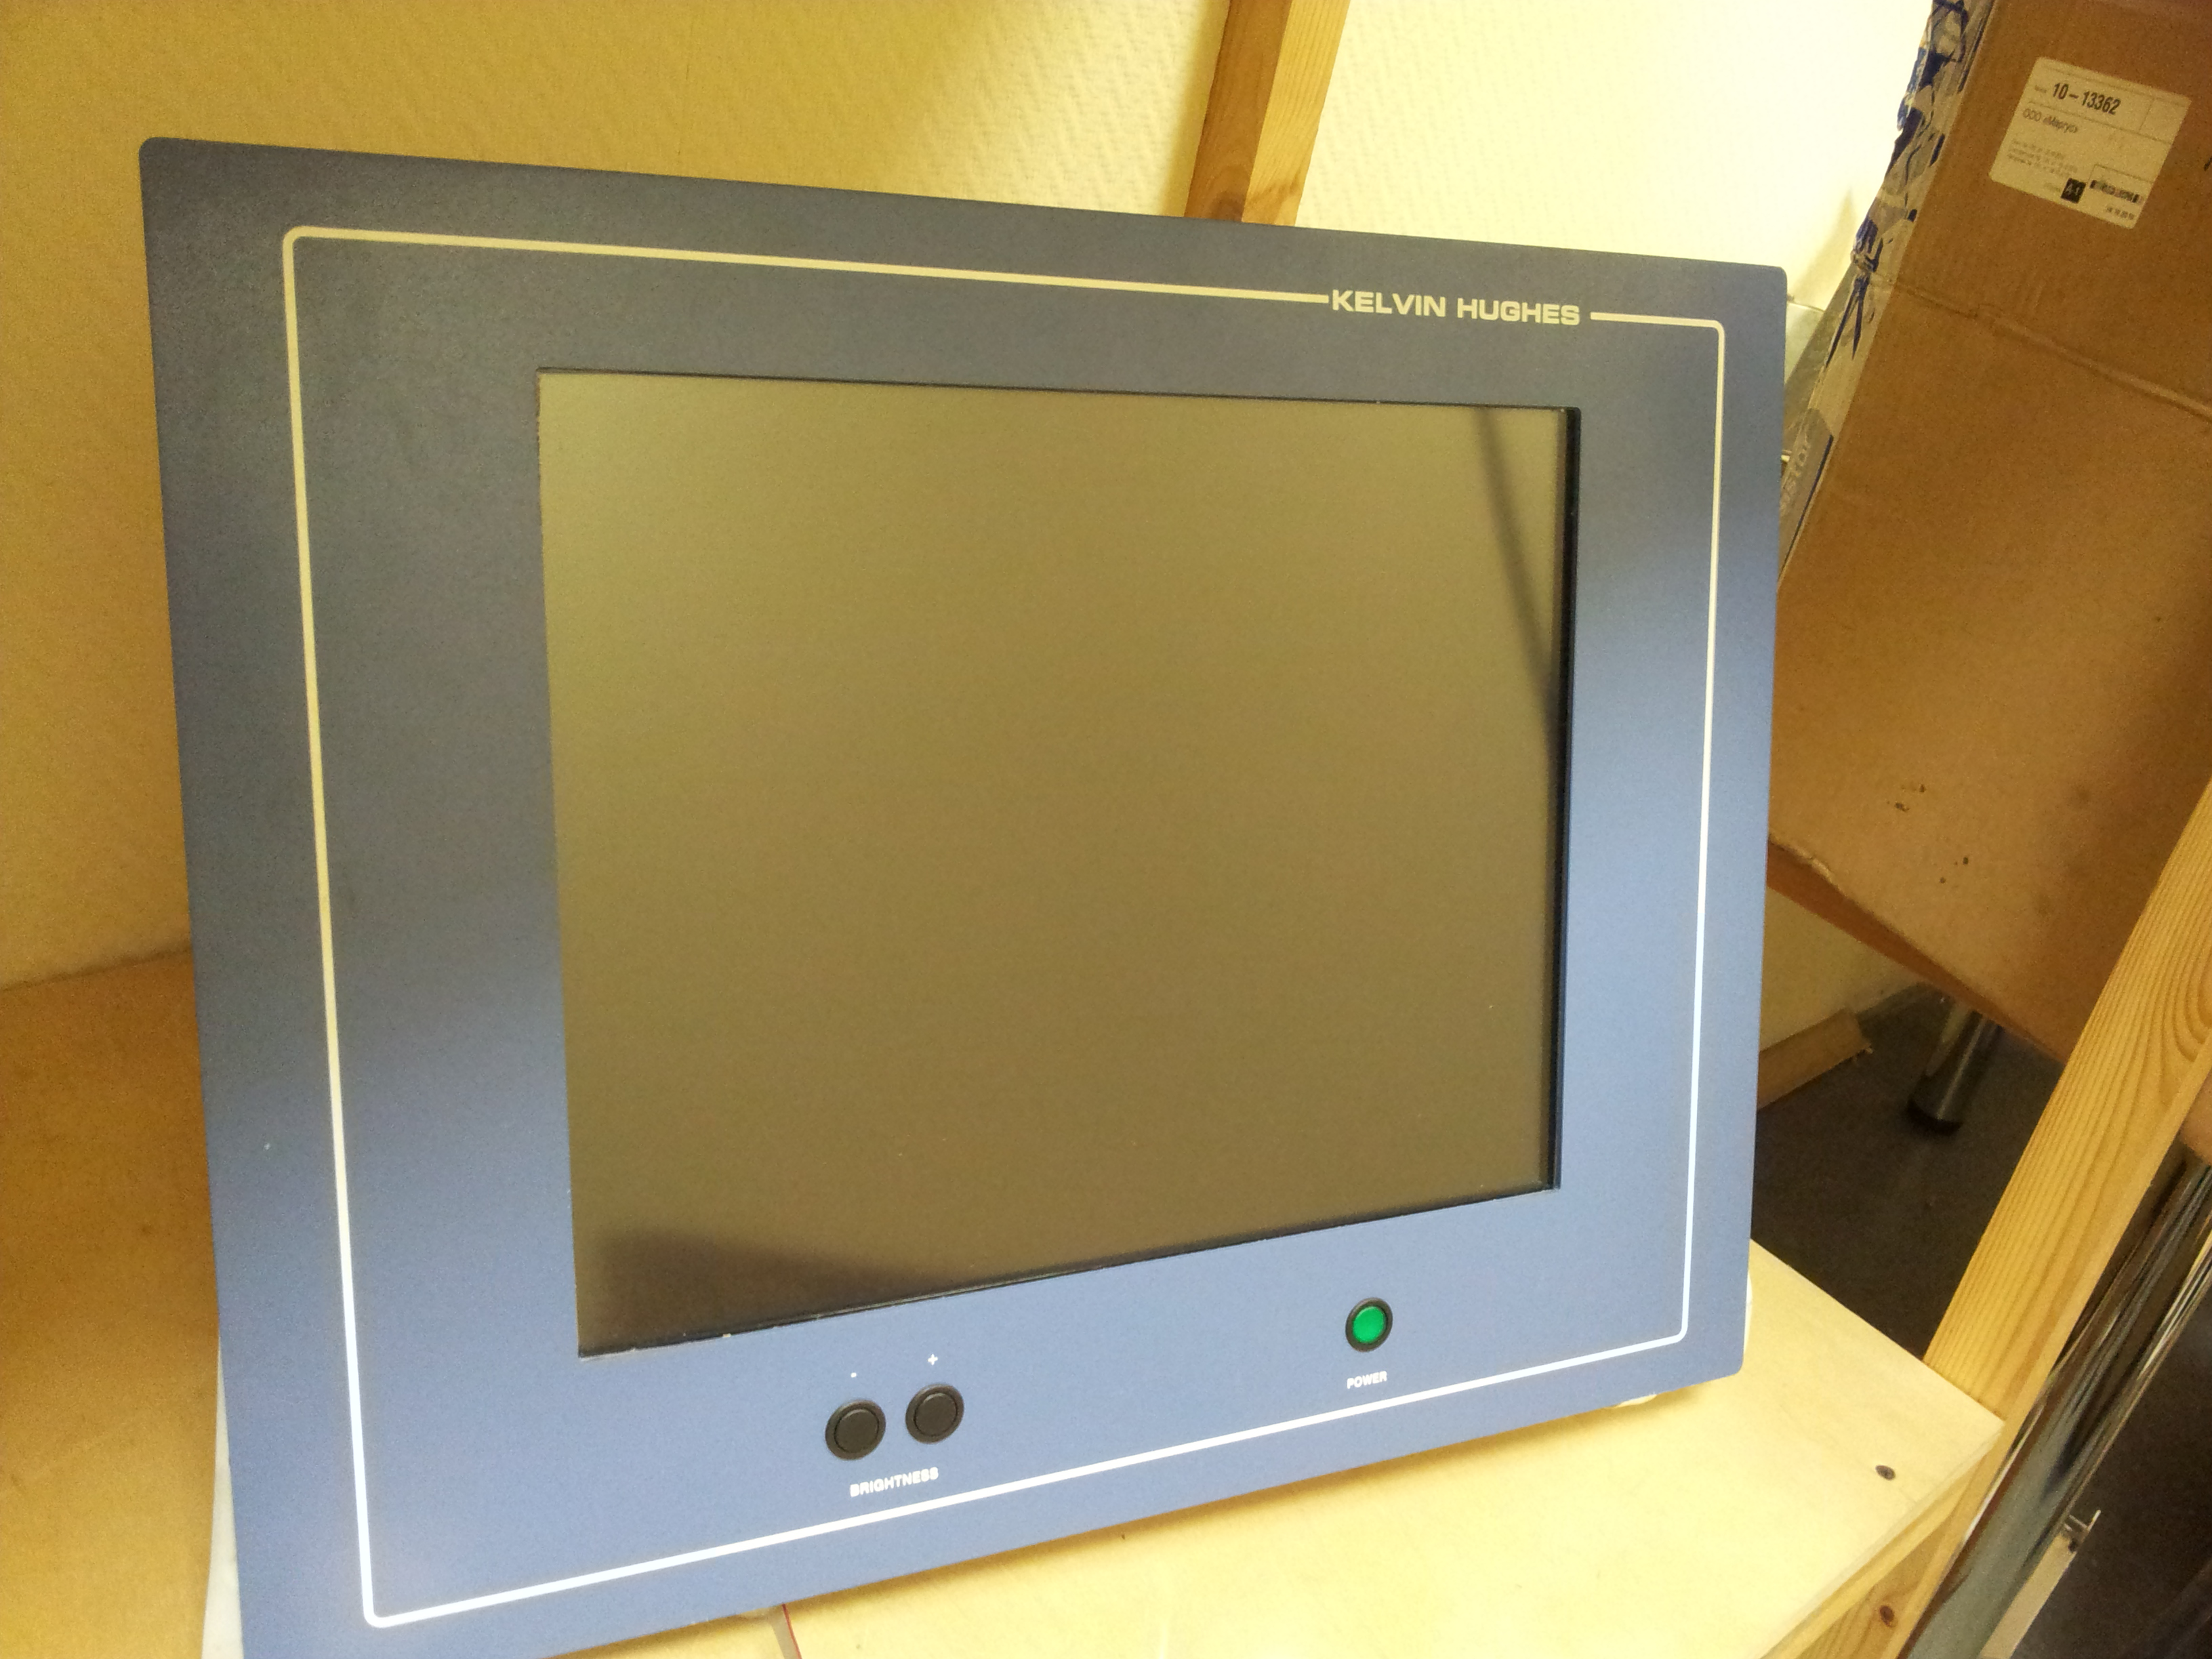 Replacing old kinescopes with old radars on LCD displays